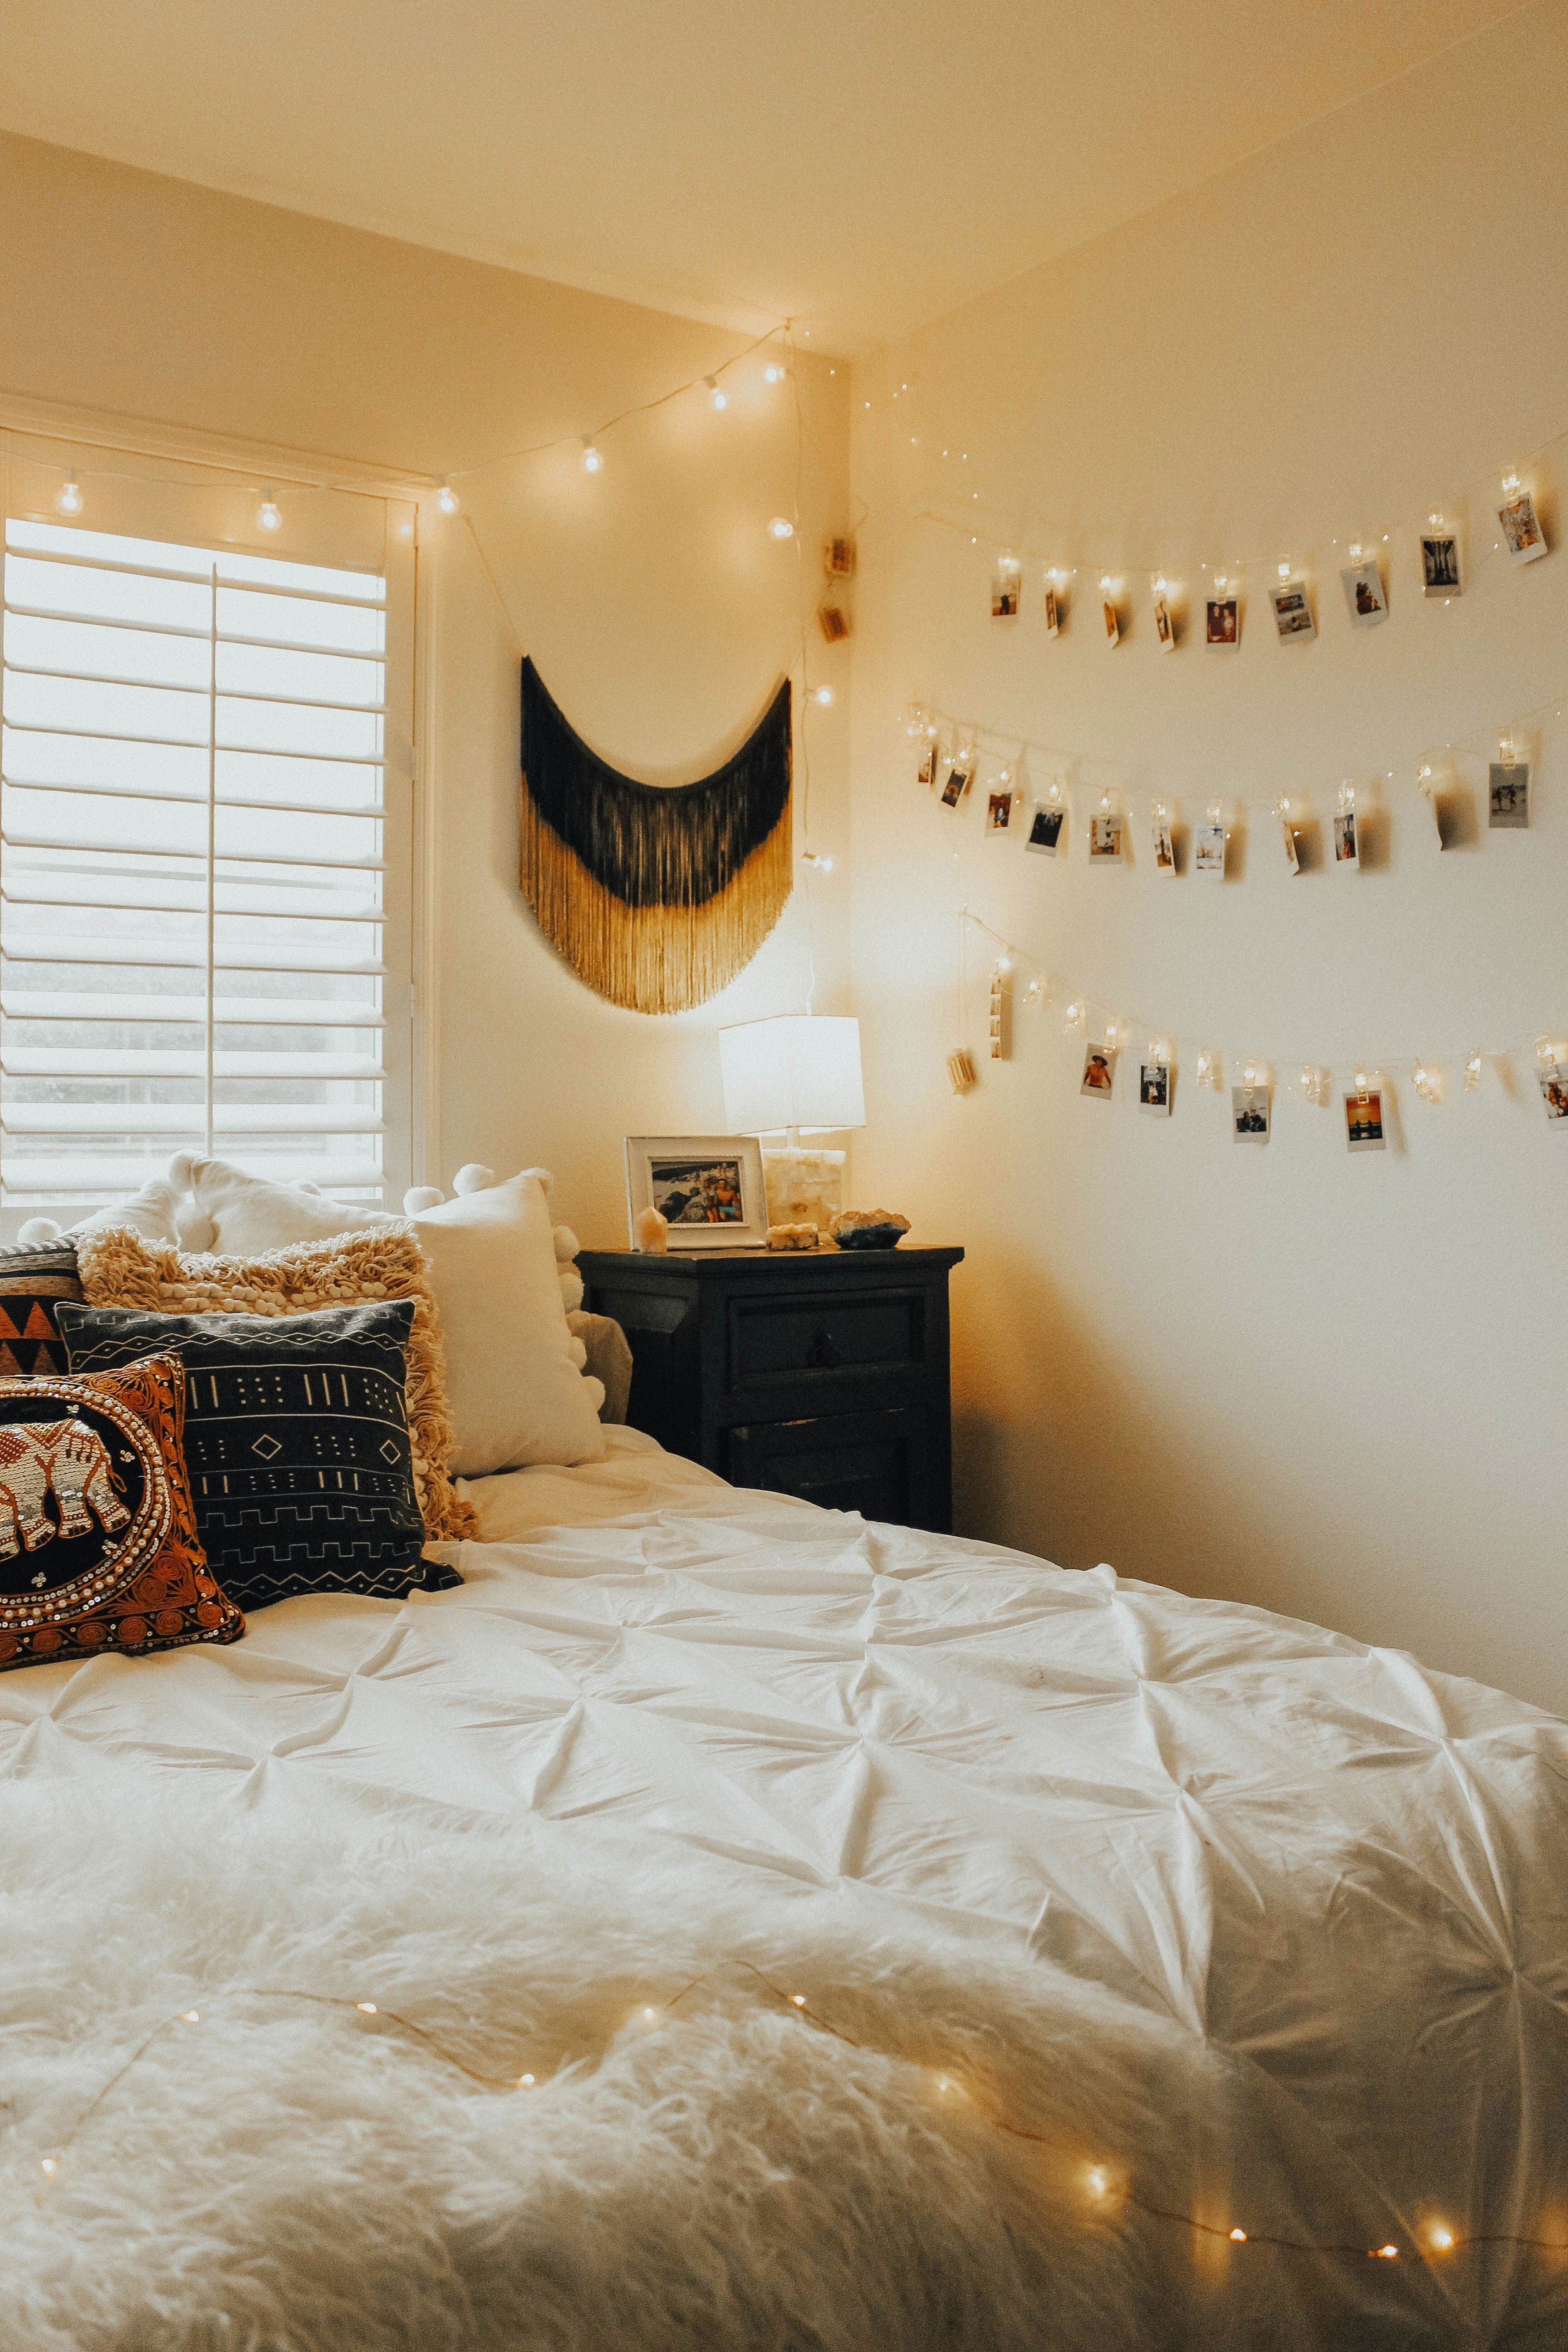 20 Affordable Bedroom Ideas With Christmas Wall Decoration